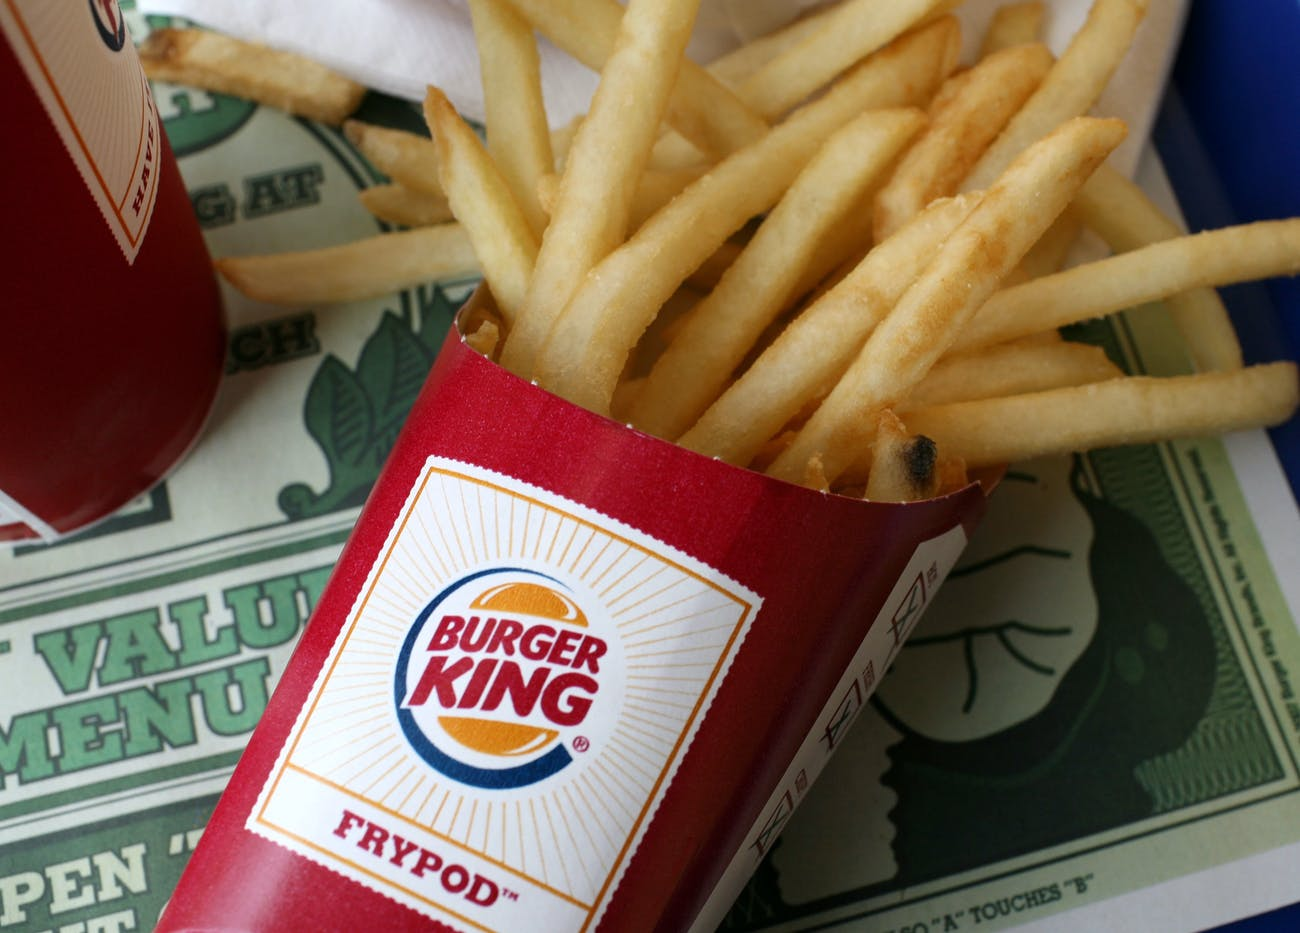 SAN FRANCISCO - AUGUST 21: A container of Burger King french fries sit on a tray at a Burger King restaurant August 21, 2008 in San Francisco, California. Burger King, the second largest hamburger chain in the U.S., surprised Wall Street today with better than excected quarterly earnings. The company reported a surge in net income with earnings of $51 million, or 37 cents per share compared to $36 million, or 26 cents per share one year ago. (Photo by Justin Sullivan/Getty Images)